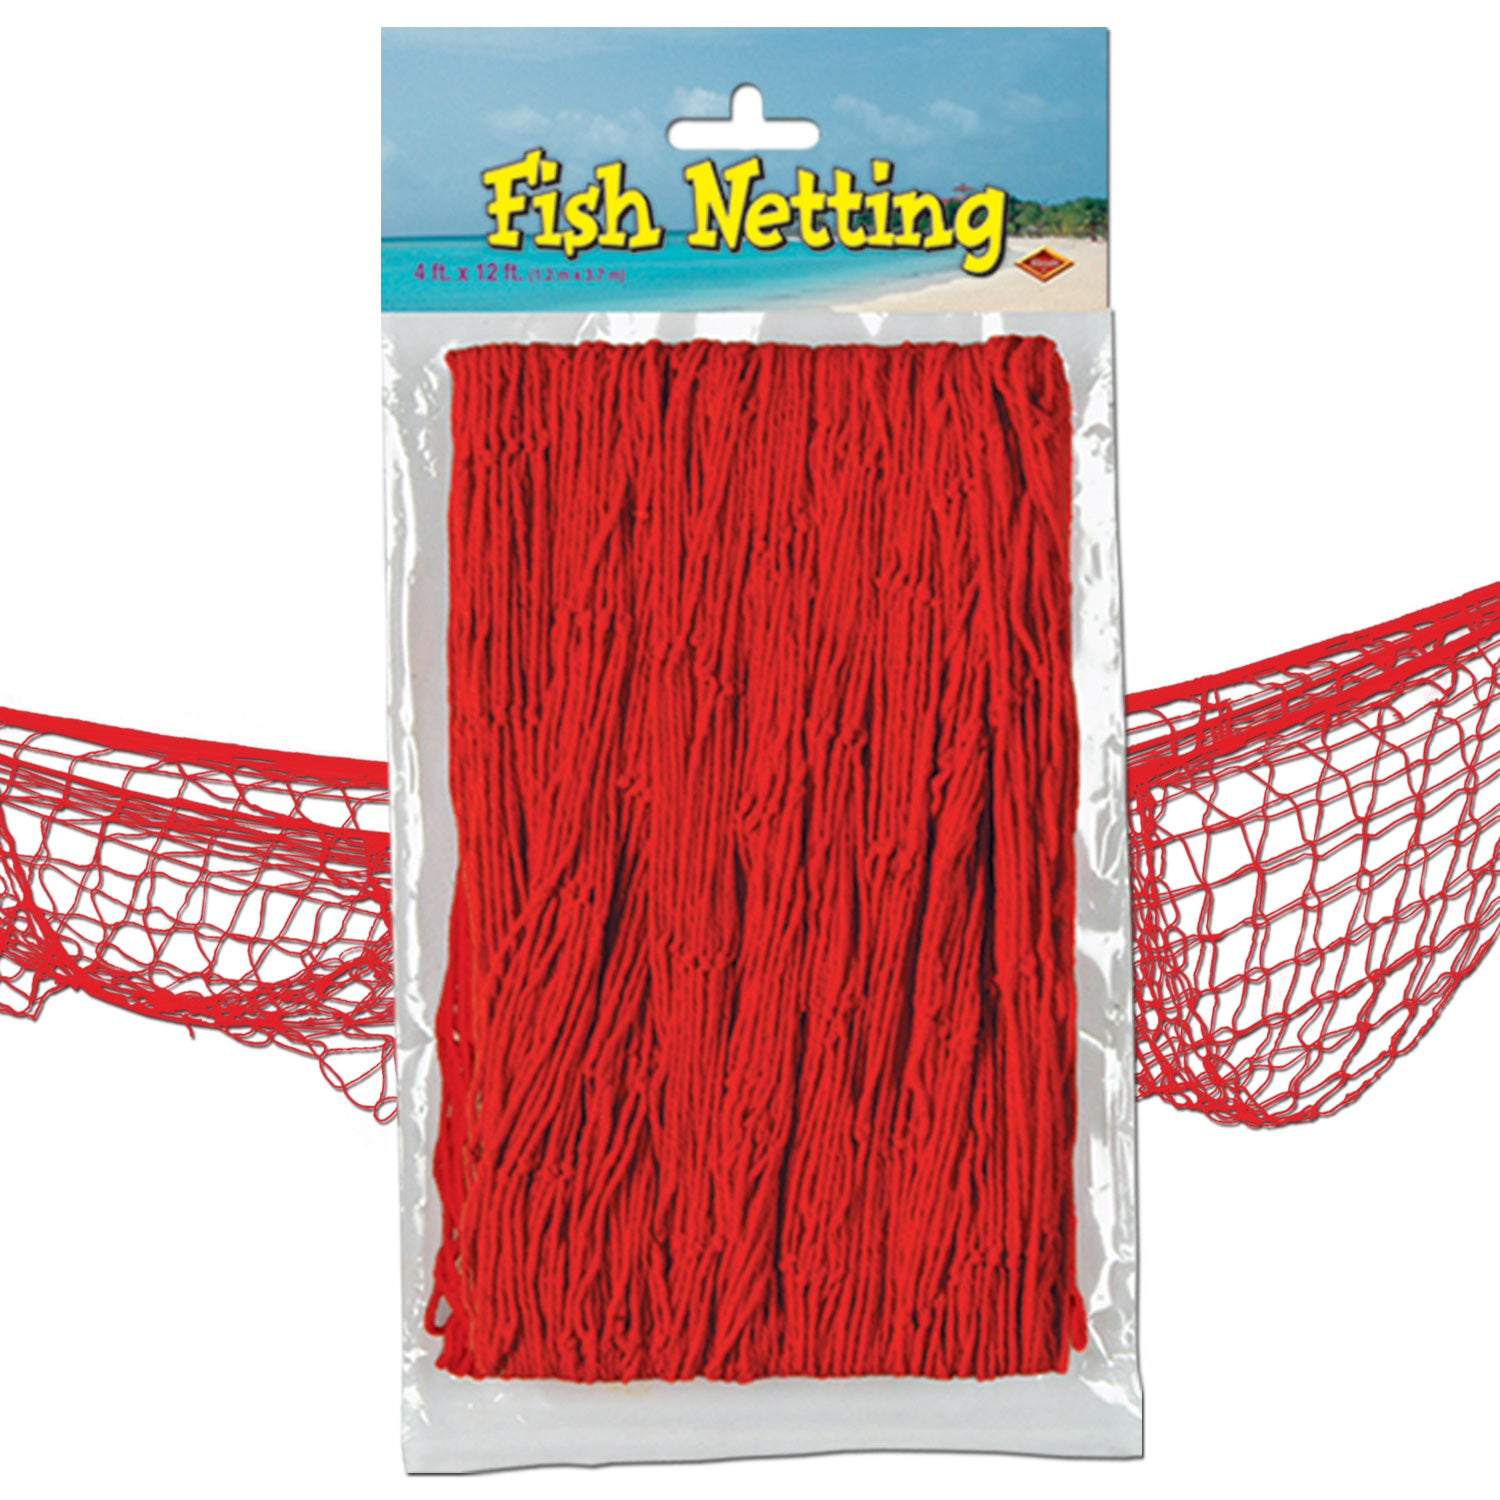 12ct) Beistle Luau Party Fish Netting red - Bulk Party Supplies